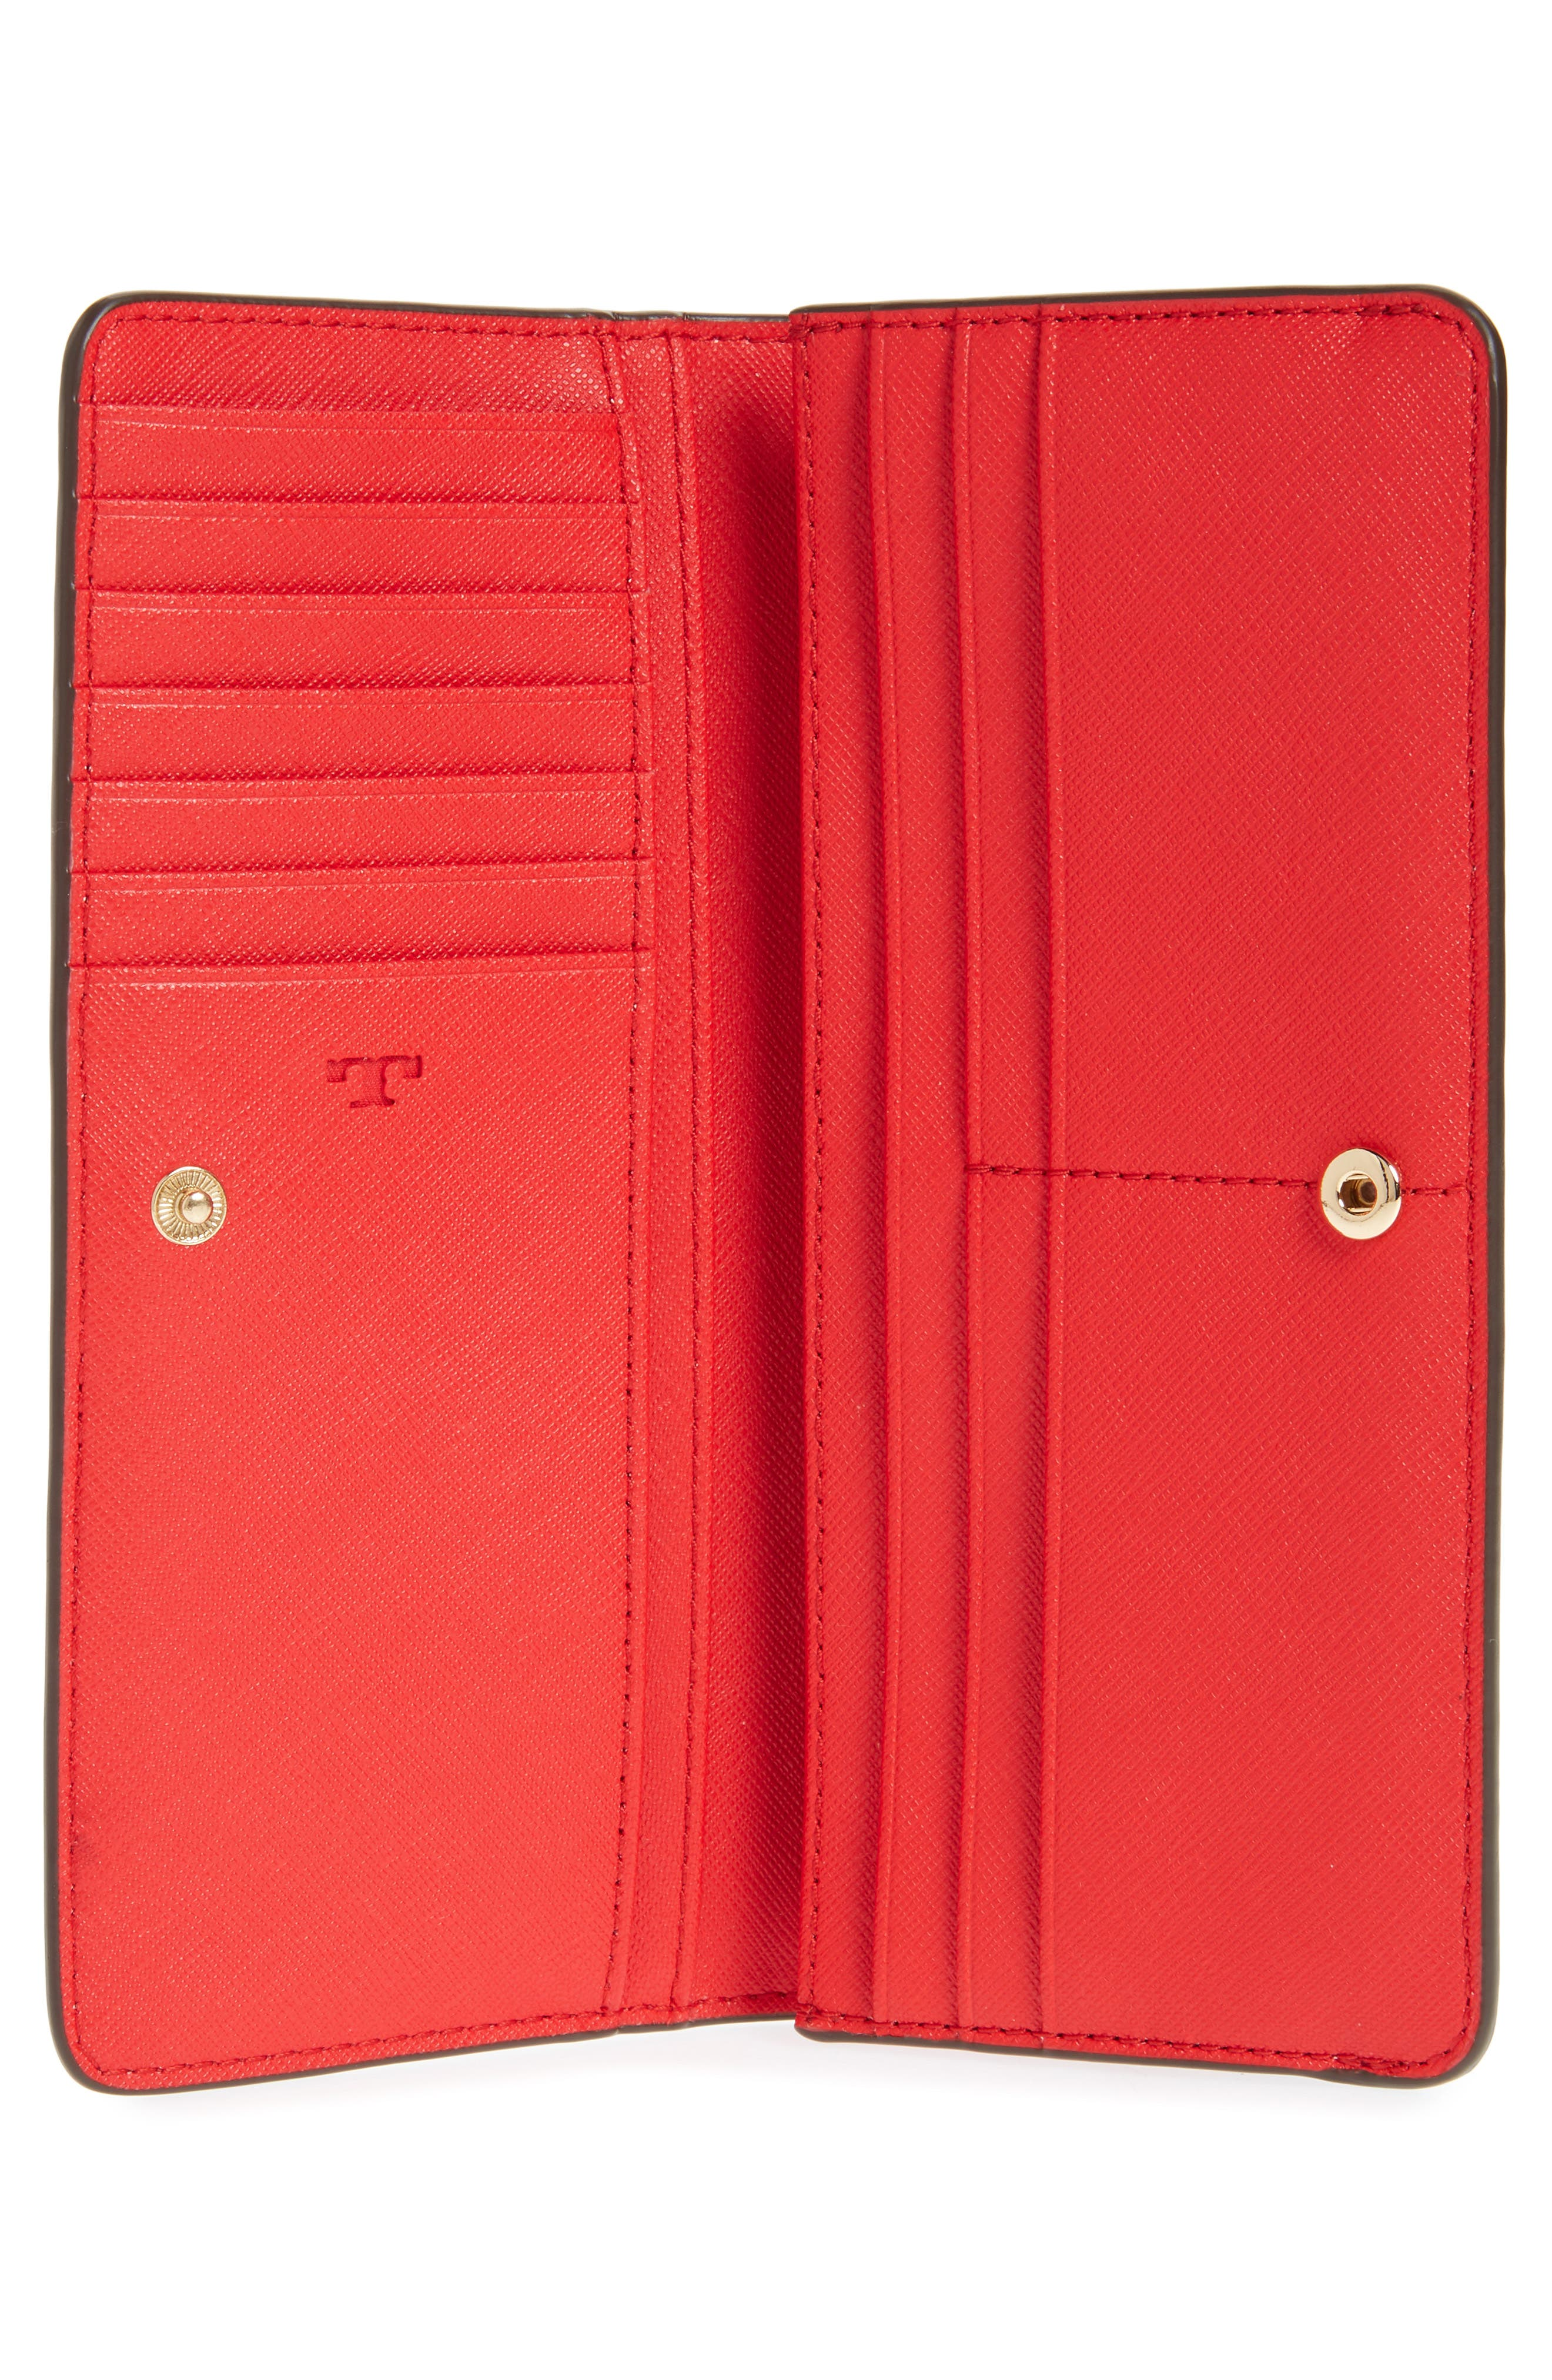 Robinson Saffiano Leather Continental Wallet,                             Alternate thumbnail 4, color,                             BRILLIANT RED